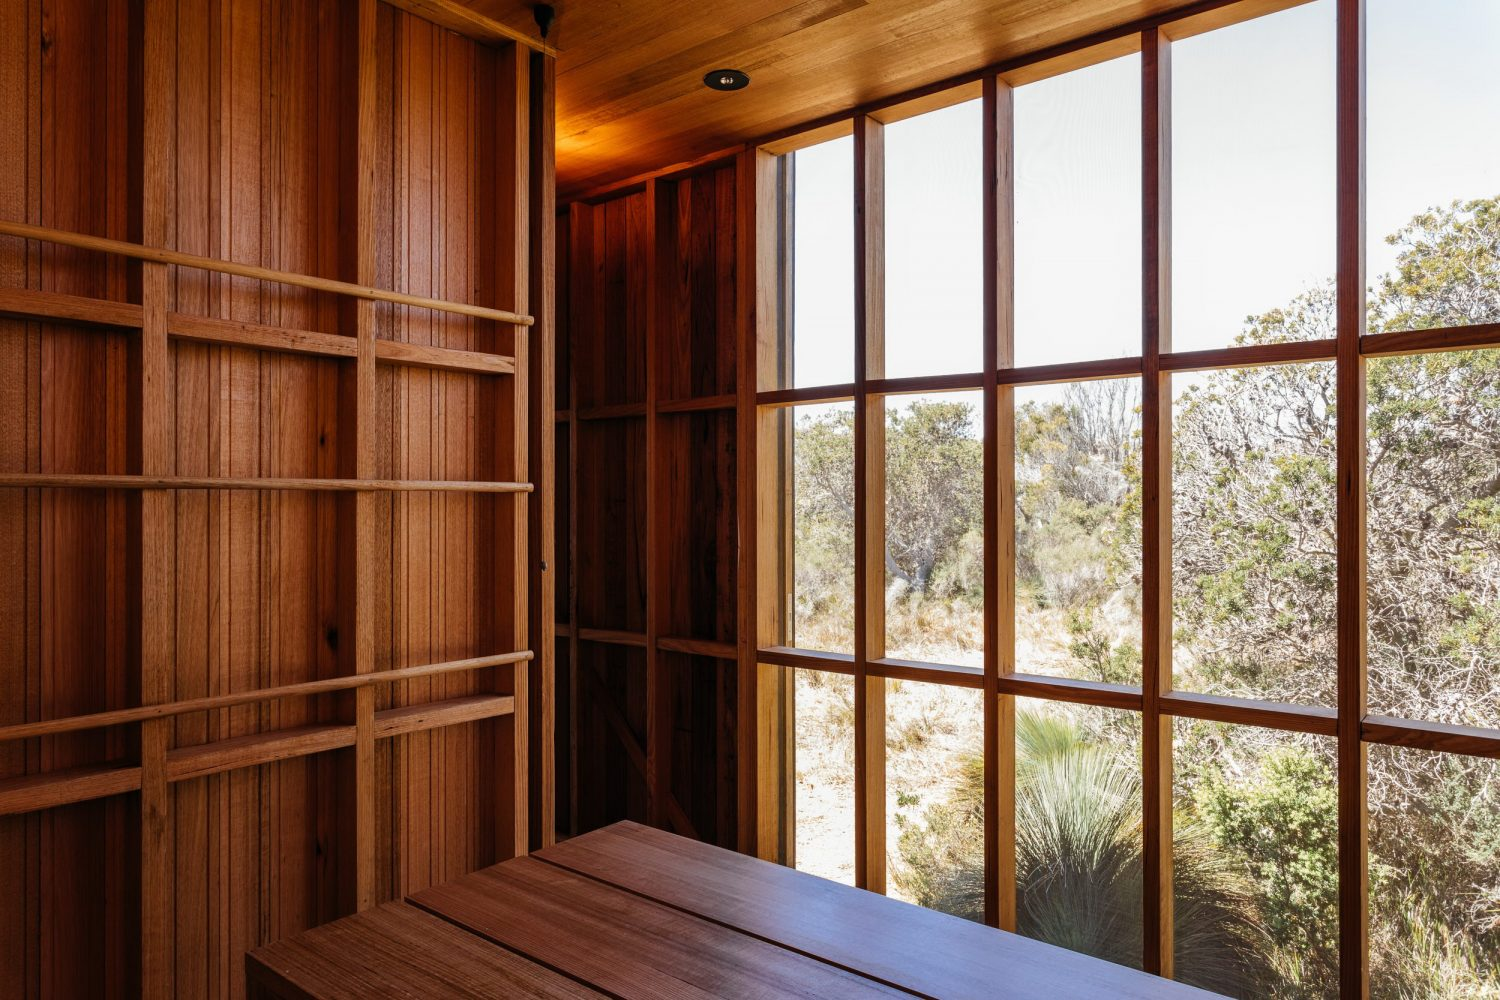 Krakani Lumi by Taylor and Hinds Architects